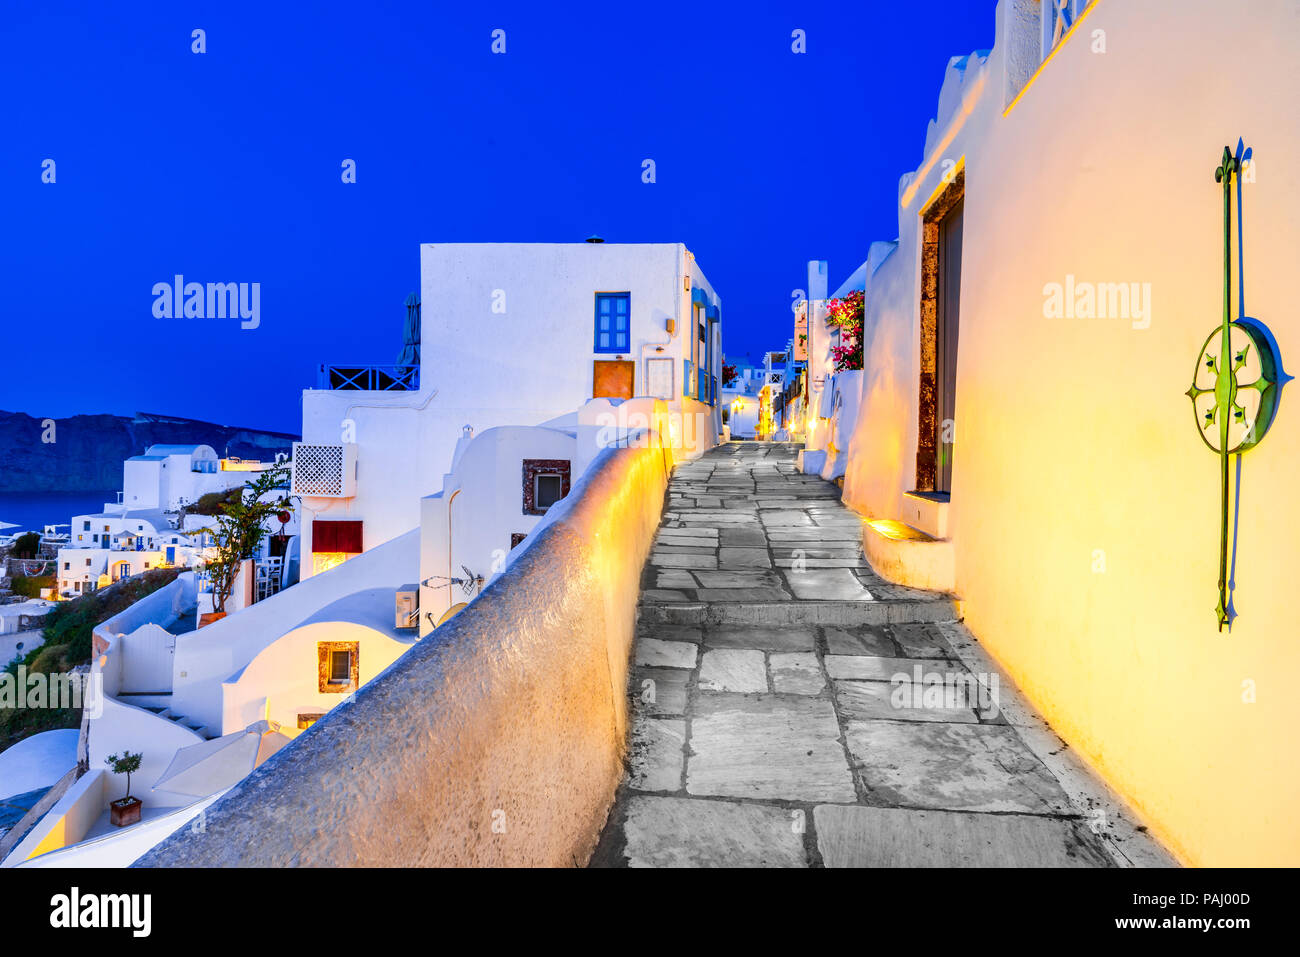 Santorini, Greece. Twilight amazing view of Oia, whitewashed city from Thira, Greek Islands. Europe holiday destination. Stock Photo